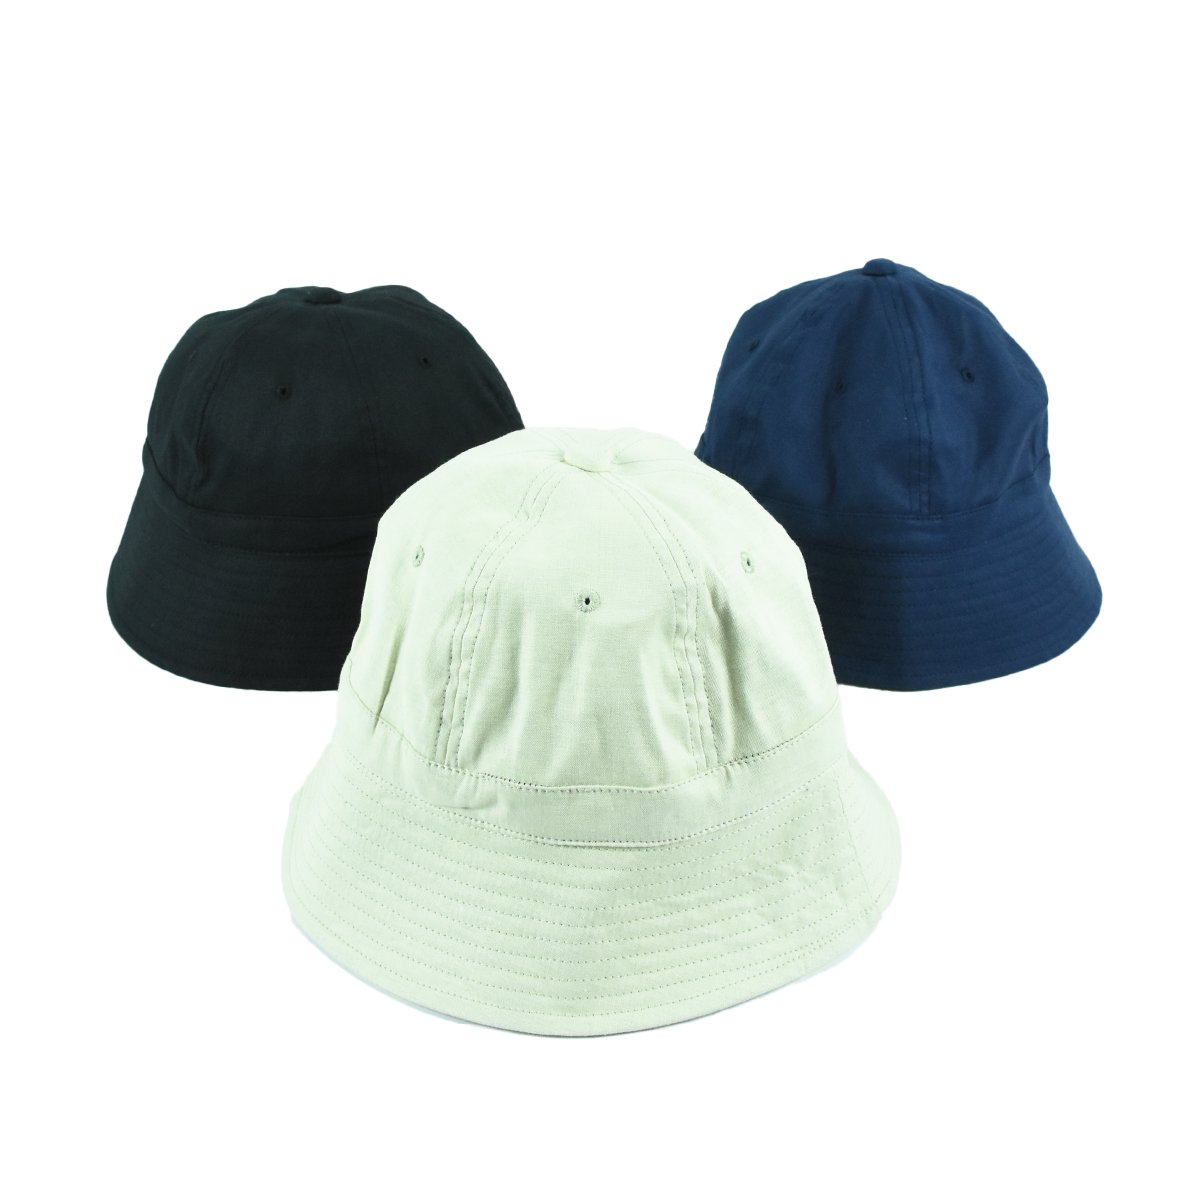 <img class='new_mark_img1' src='https://img.shop-pro.jp/img/new/icons8.gif' style='border:none;display:inline;margin:0px;padding:0px;width:auto;' />【Seen?】 Bell Hat (Black/Terracotta/Natural)                           </a>             <span class=